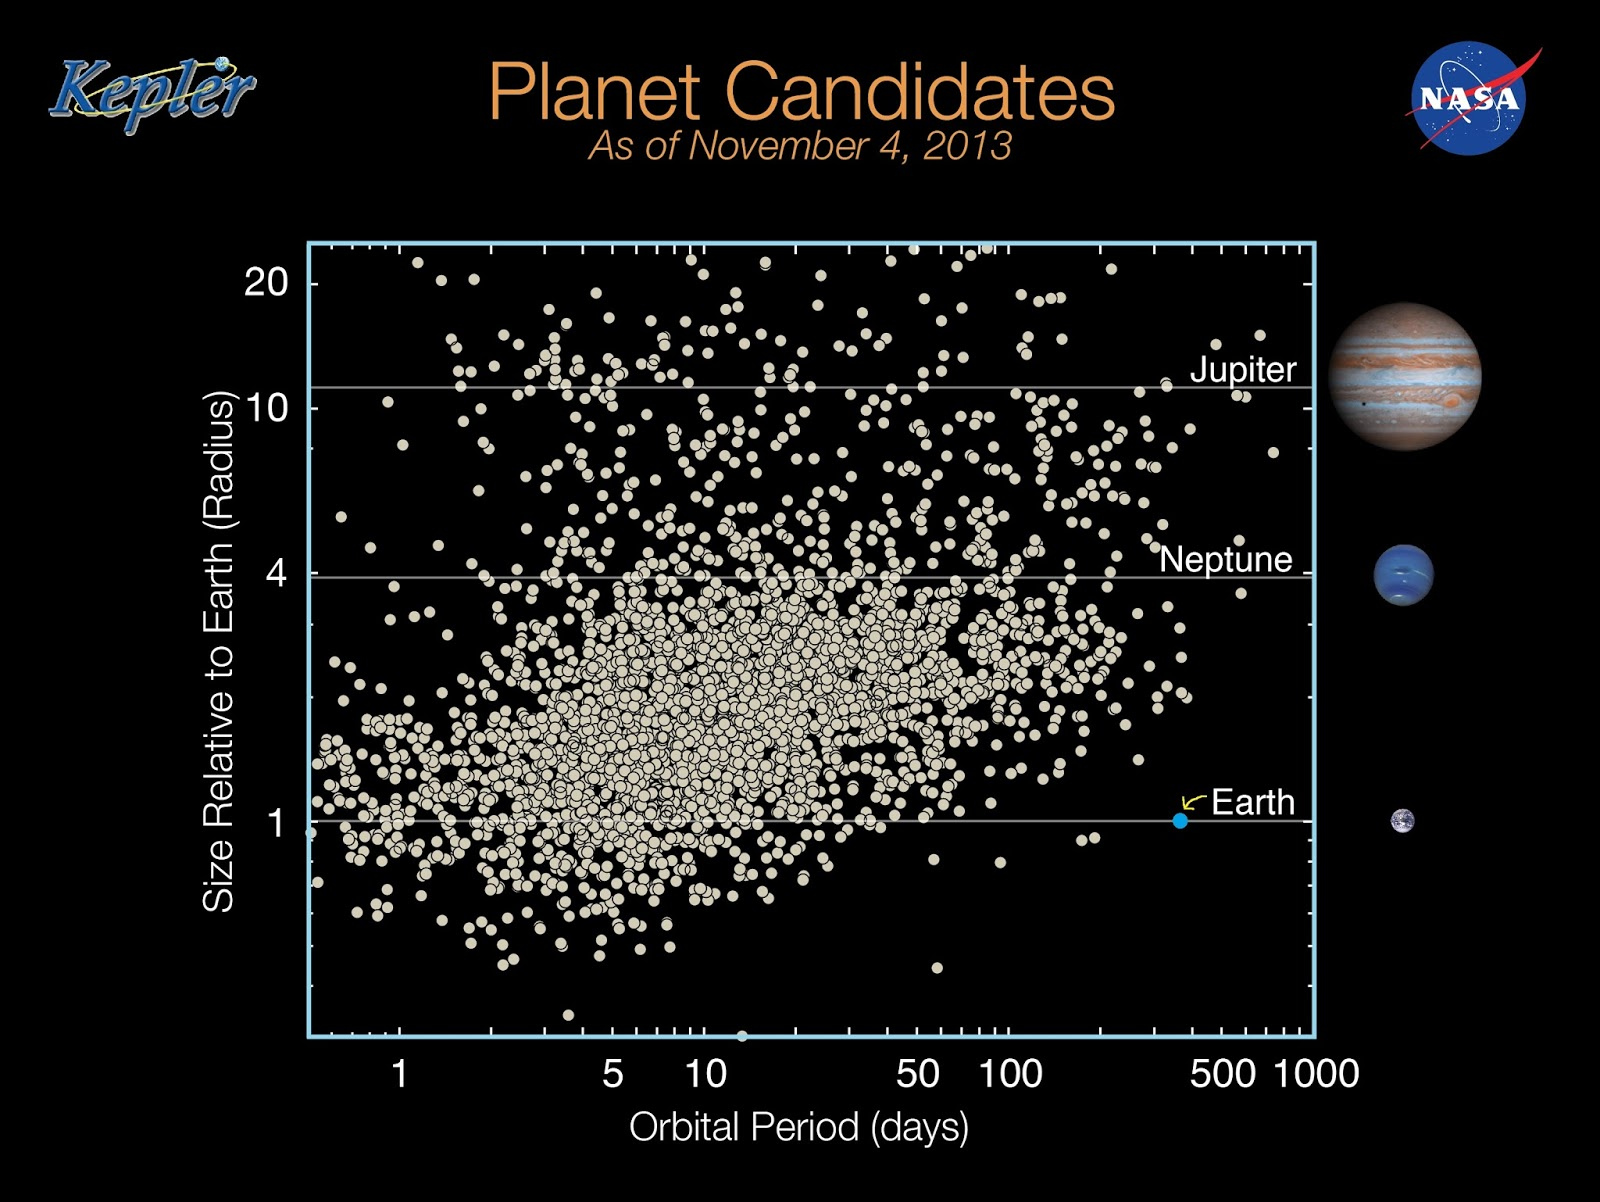 This plot shows all known planets as of November 4, 2013; each dot represents a confirmed planet. The vertical y-axis shows relative size (radius) of a planet with Earth (blue dot) at 1. All planets above 1 are larger (more massive) than Earth. The horizontal x-axis represents orbital period in days. Anything left of Earth along the x-axis have shorter, and therefore tighter, orbits around their host star. As can be clearly seen, most planets are larger, and have shorter orbital periods than the inner planets or our solar system.    - Plot Source: NASA (I added Earth for visual reference)